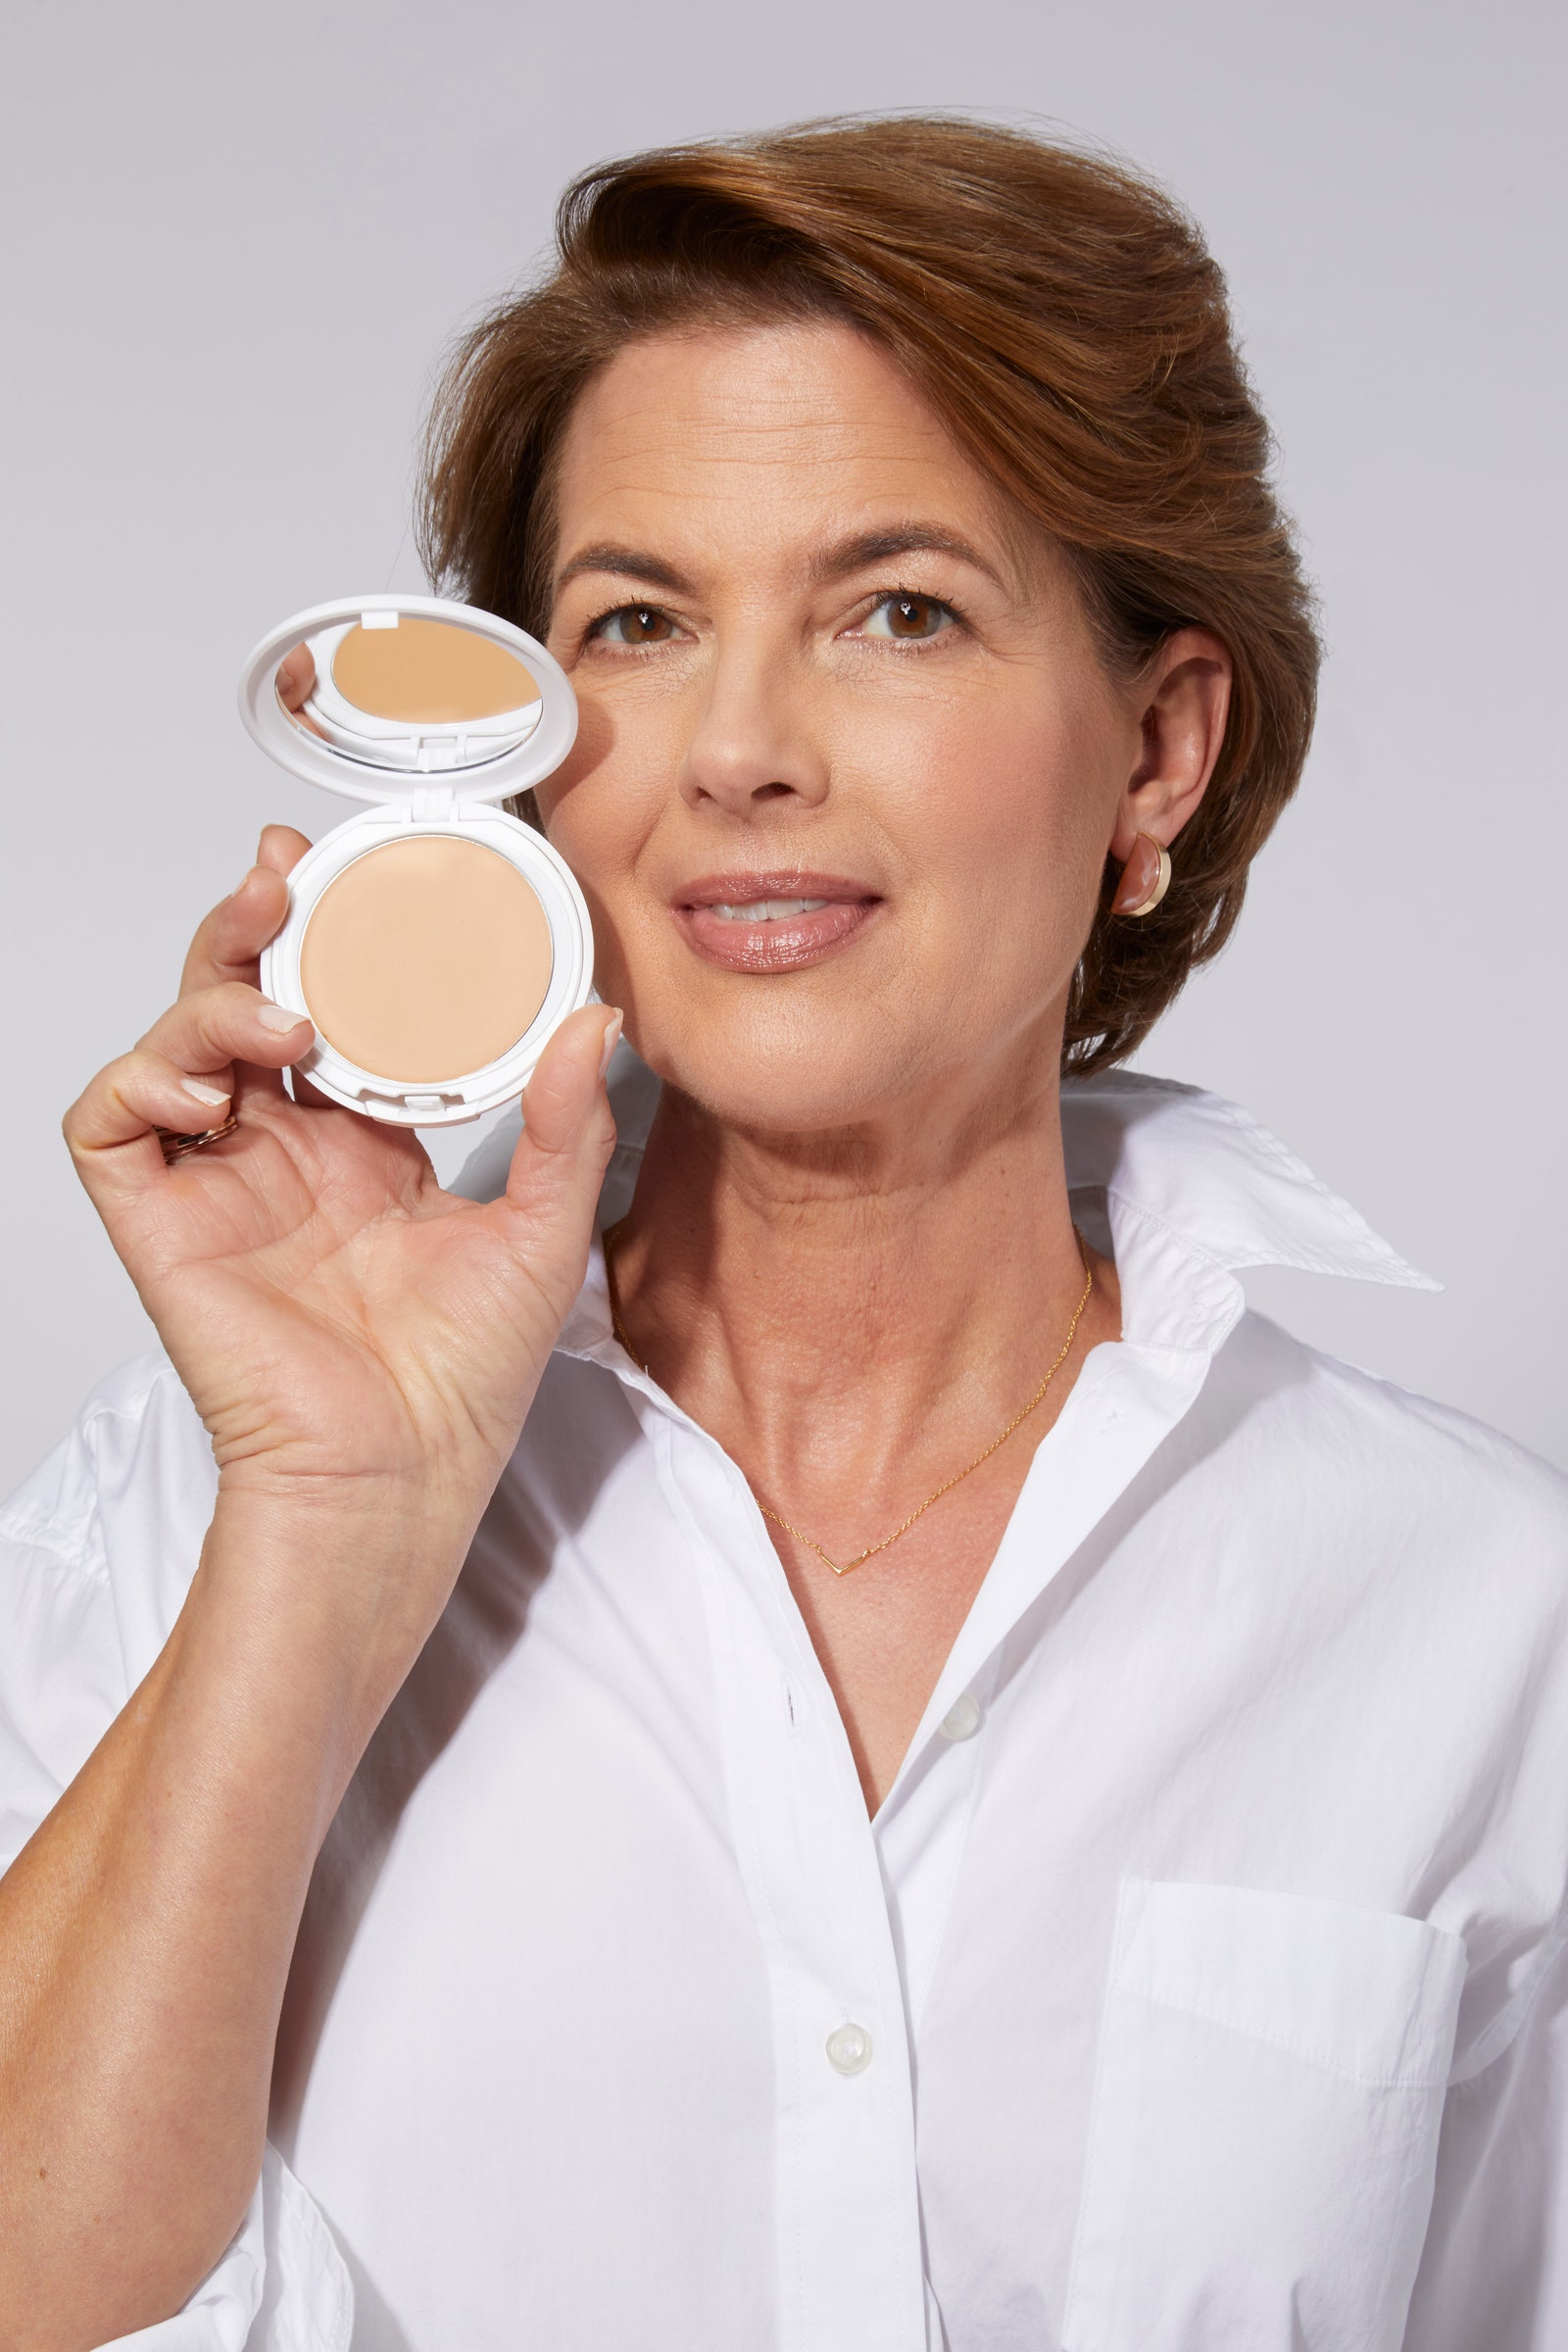 Model in a white shirt holding up a pressed powder compact